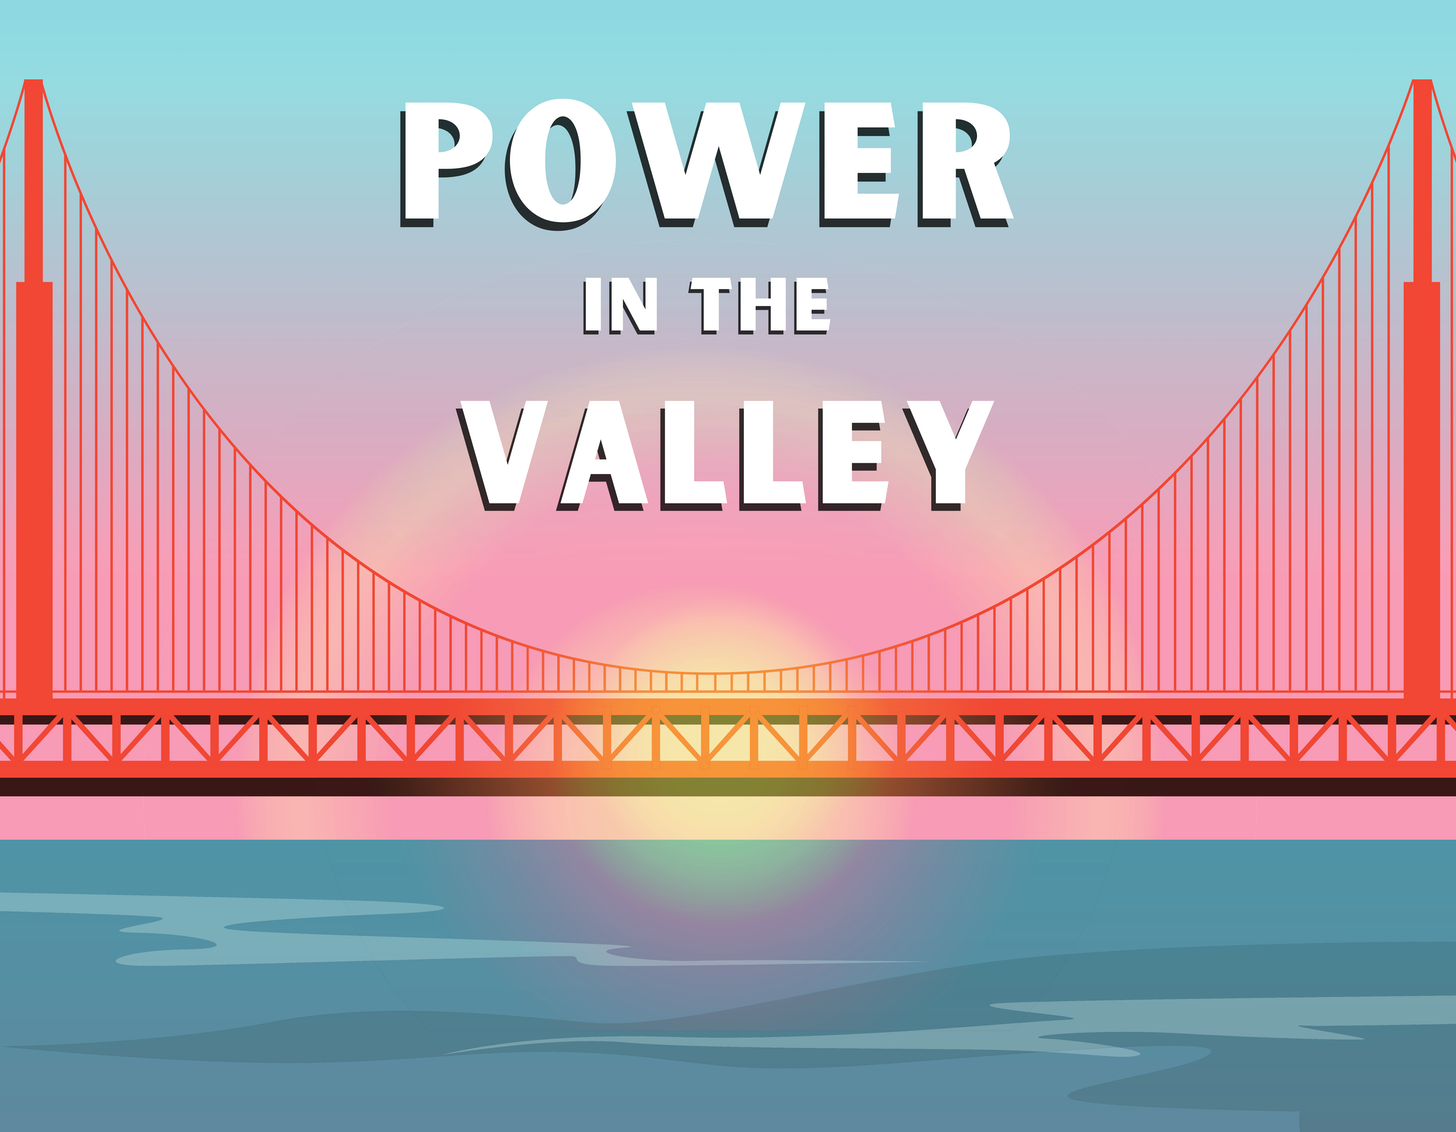 Power in the Valley